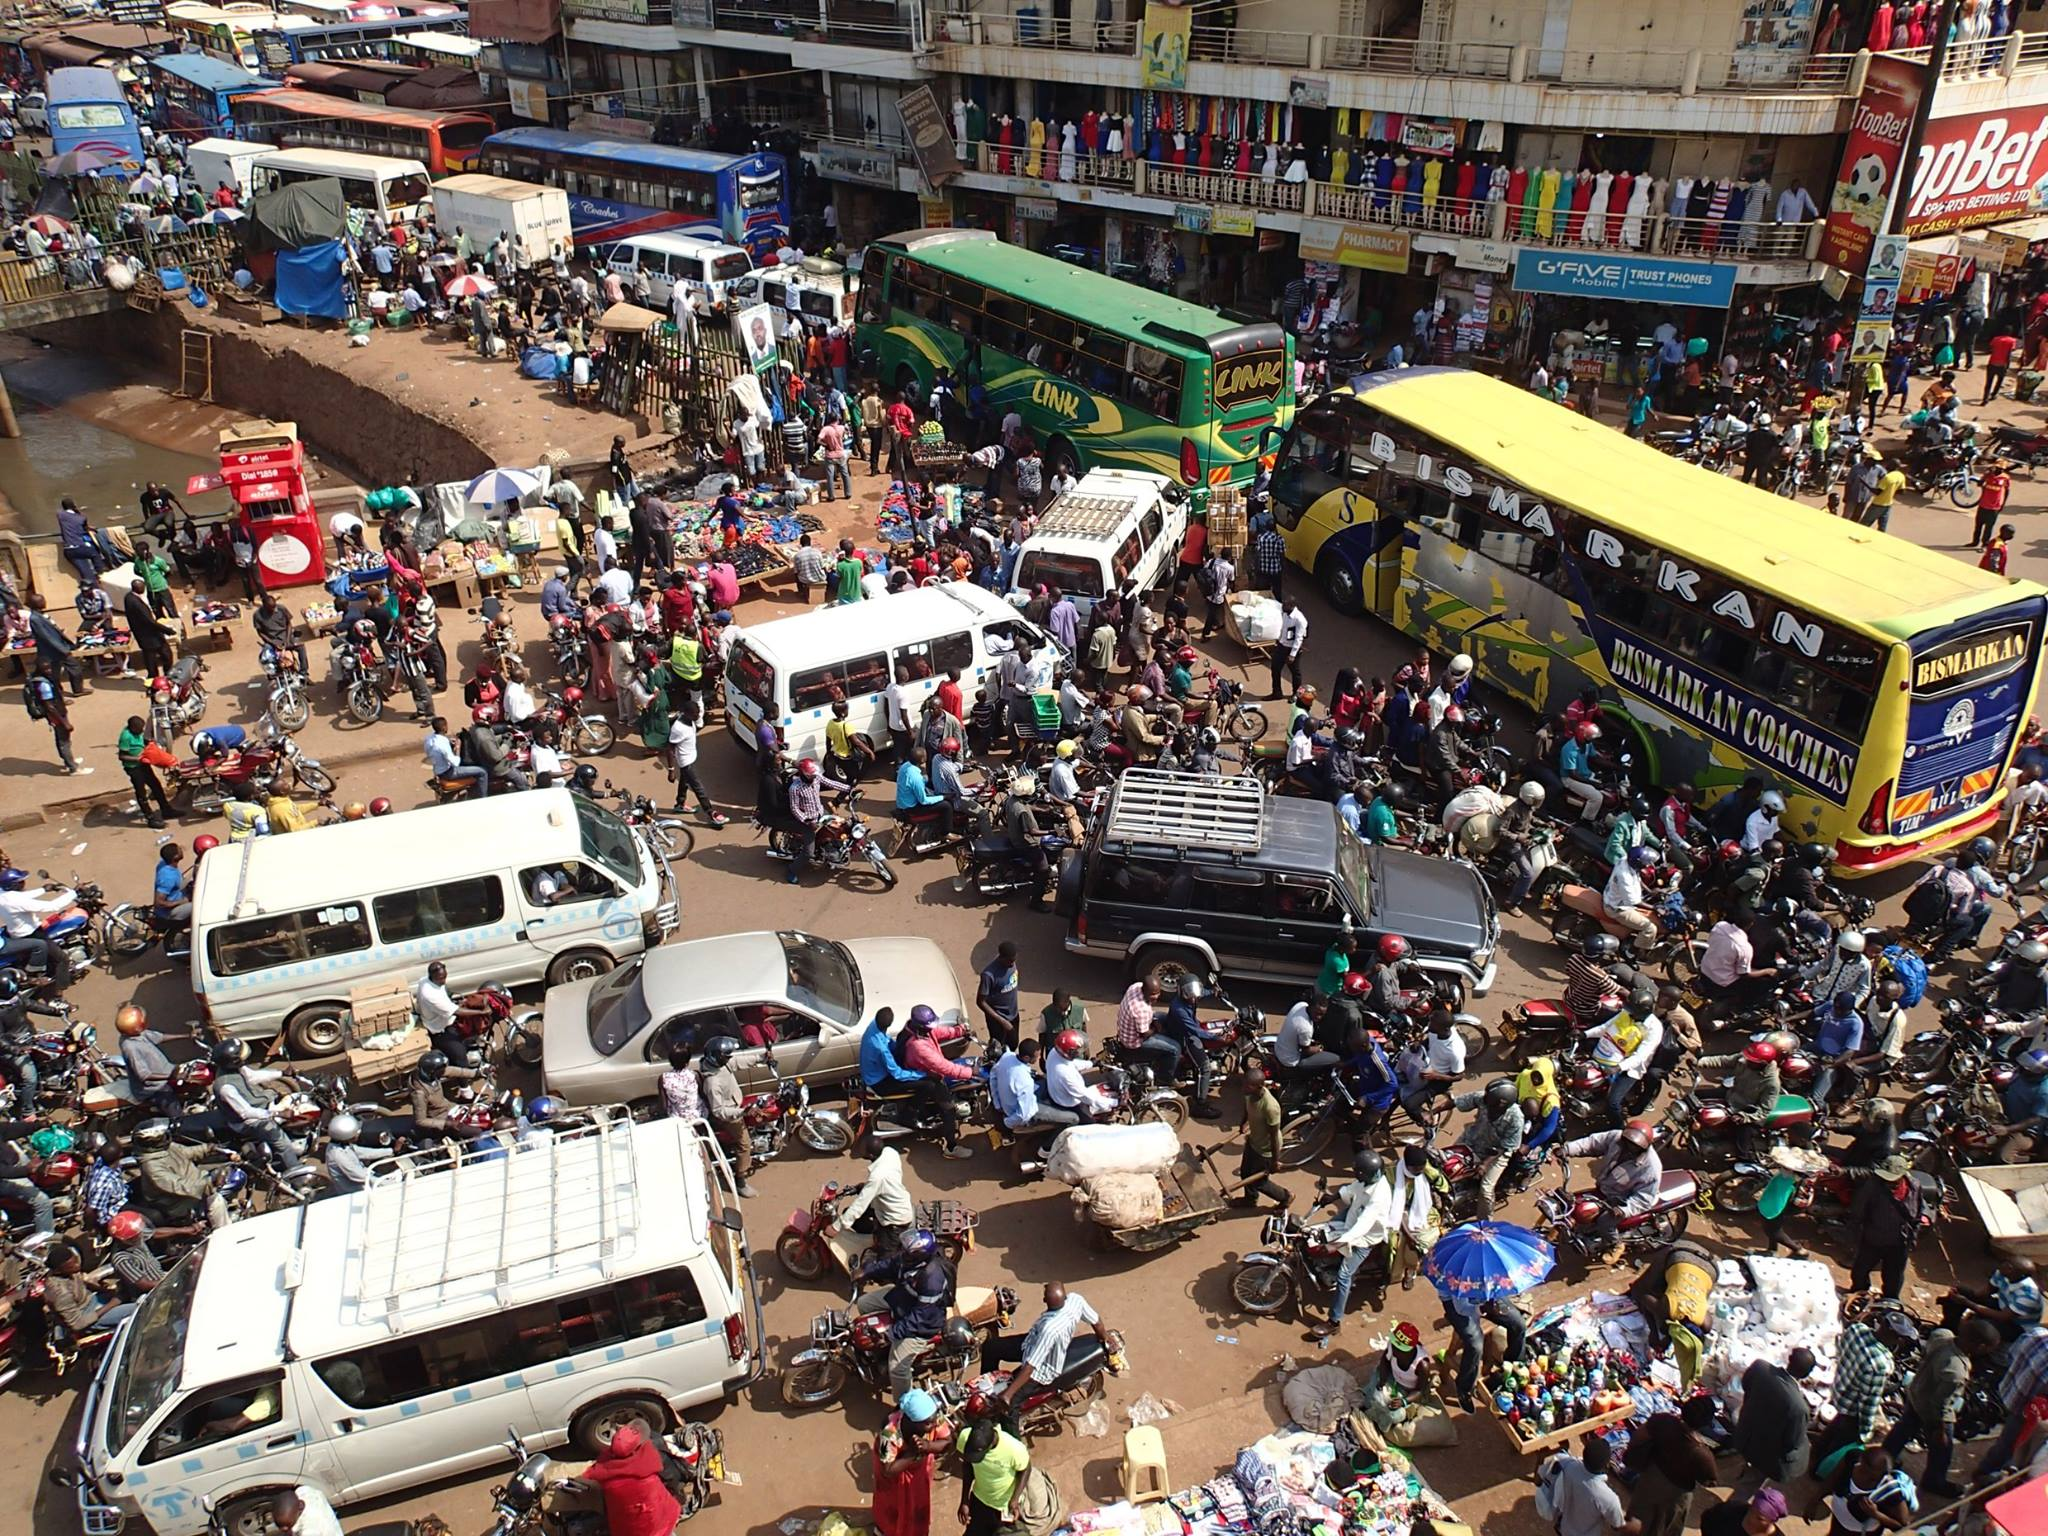 Intersection at City Center of Kampala